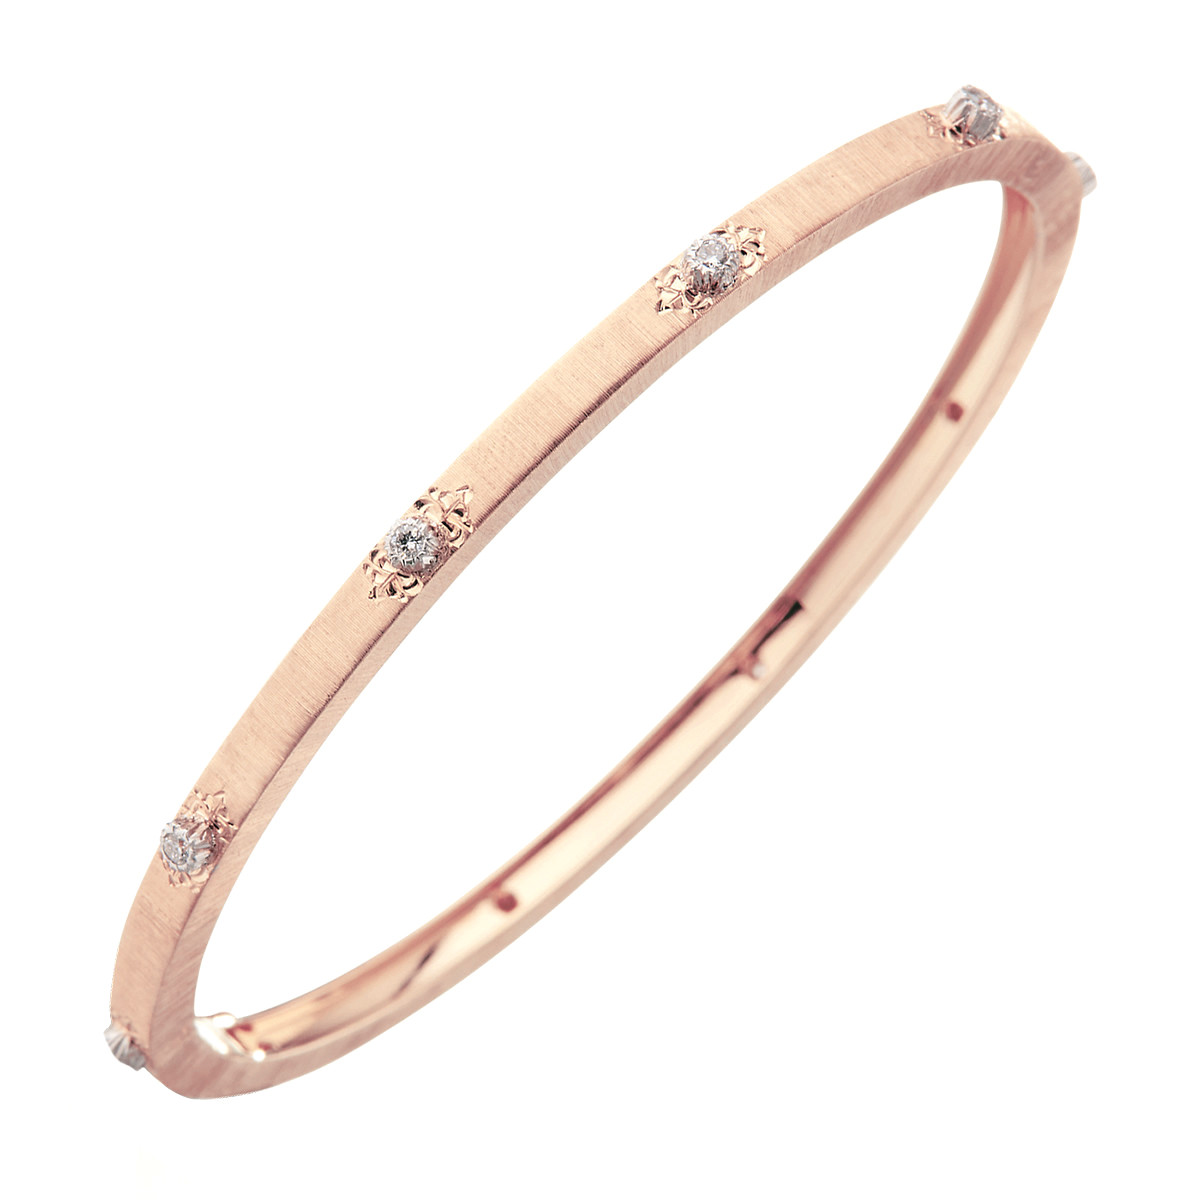 "Thin 18k Rose Gold & Diamond ""Macri"" Bangle Bracelet"